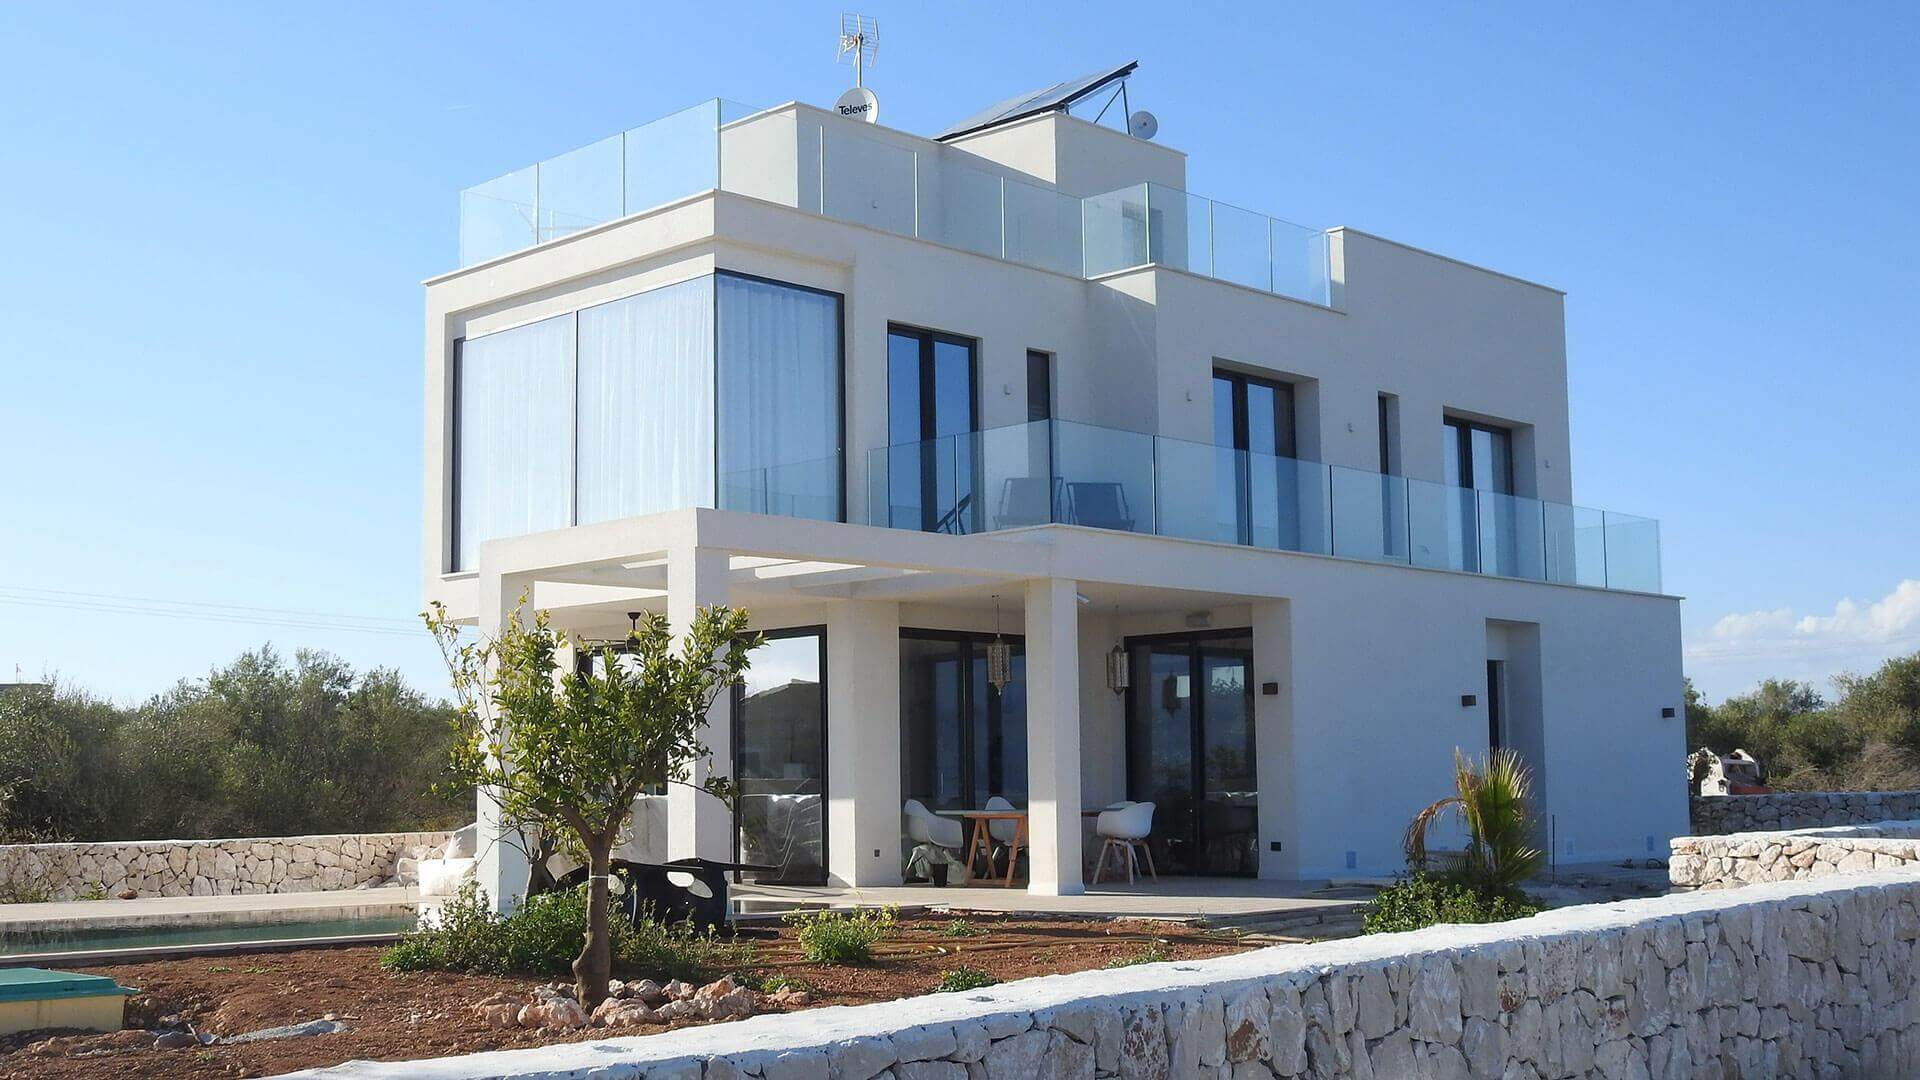 Investments & Pensions: Holiday home gained through investments